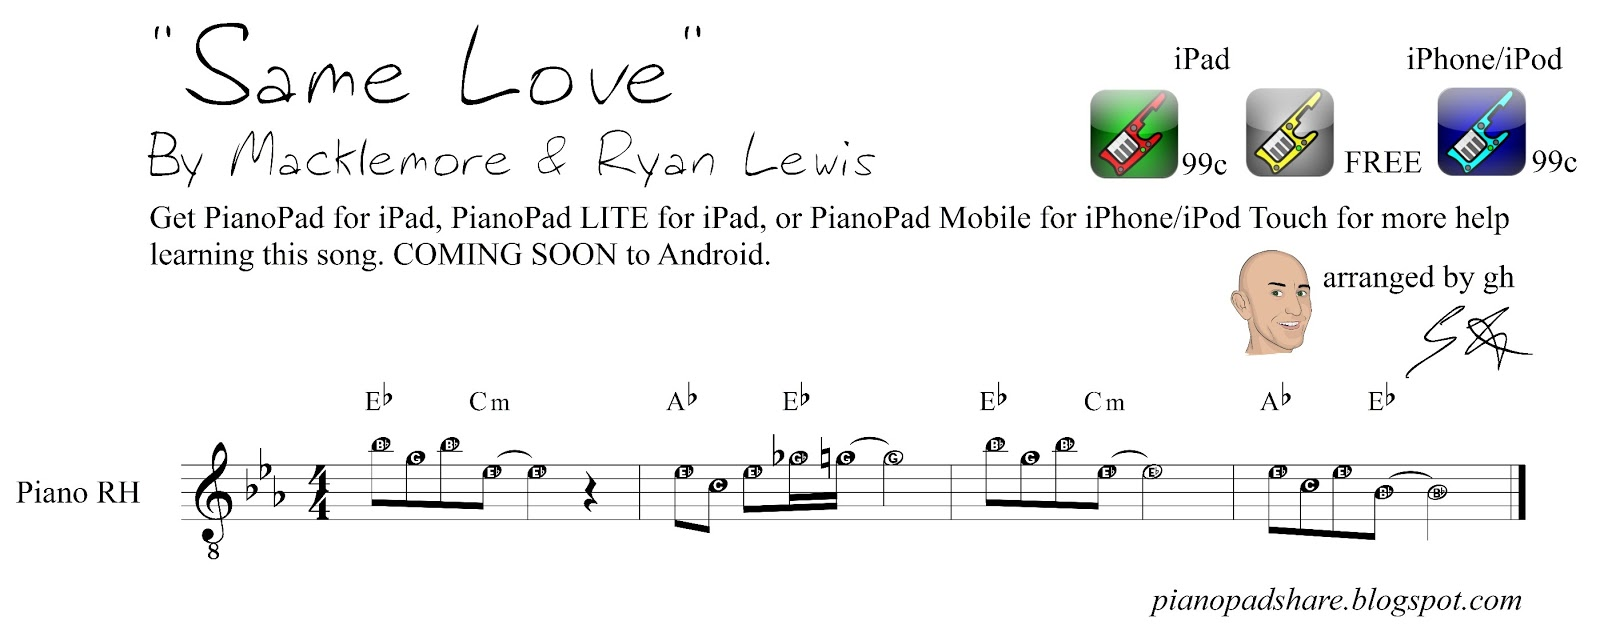 Pianopad upload community same love by macklemore and ryan same love by macklemore and ryan lewis uploaded by gh hexwebz Gallery